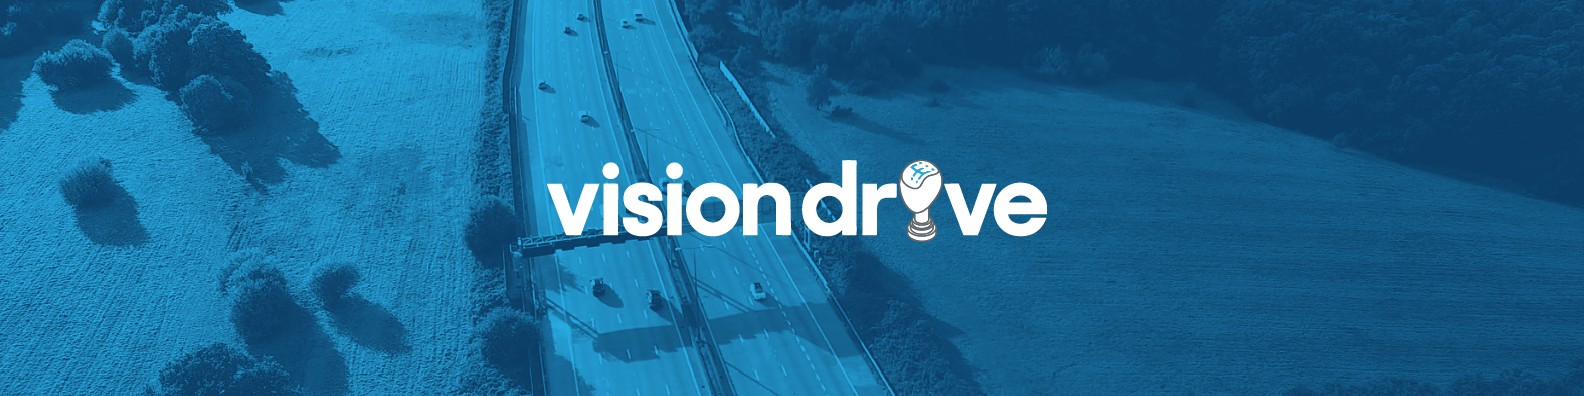 7e0ce1f116b Vision Drive Limited cover image